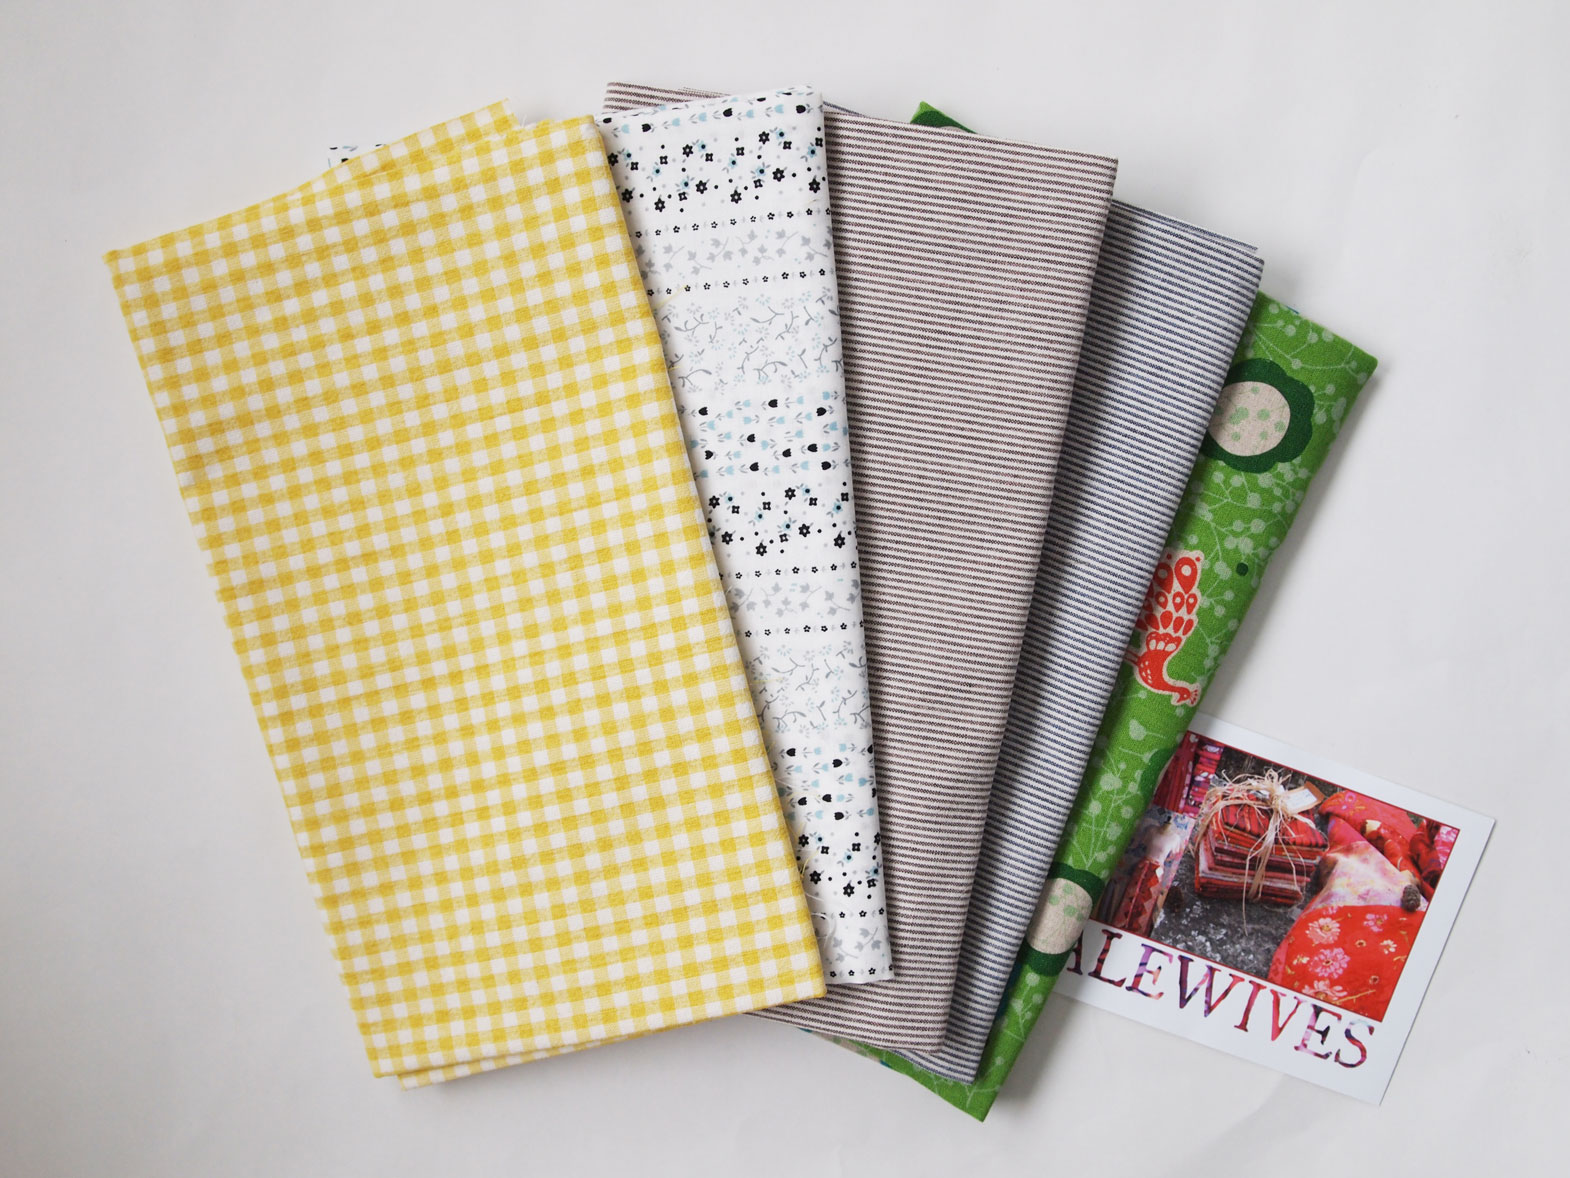 fabrics from Alewives